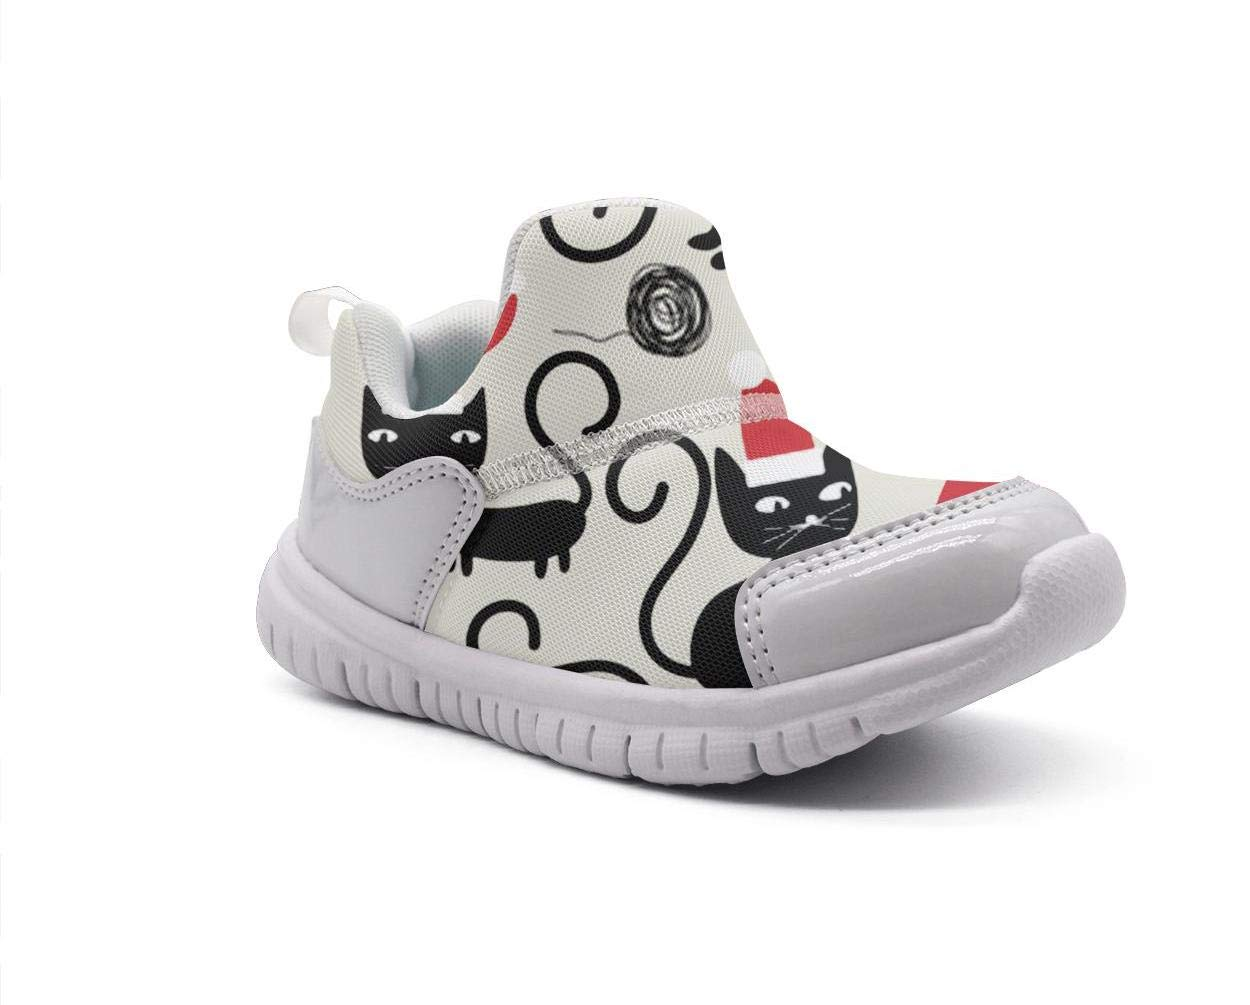 ONEYUAN Children Cats Wearing Santa Hats and Playing with Balls of Yarn Kid Casual Lightweight Sport Shoes Sneakers Running Shoes